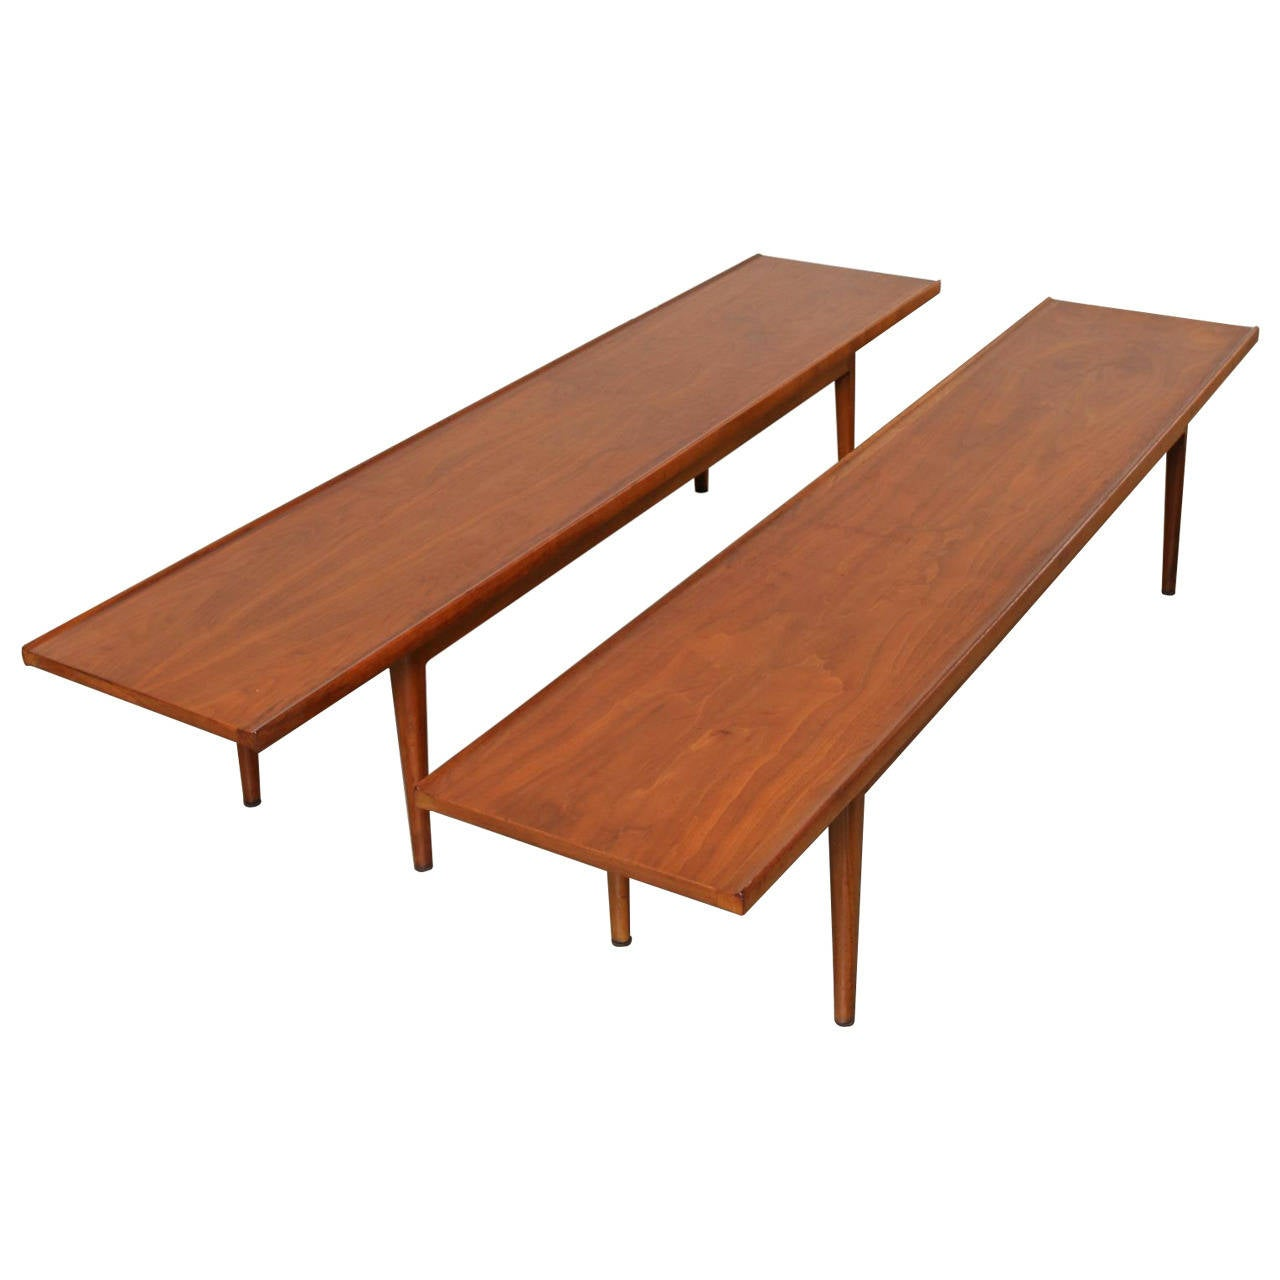 Pair Of Walnut Bench Tables By Kipp Stewart For Drexel 1960s At 1stdibs